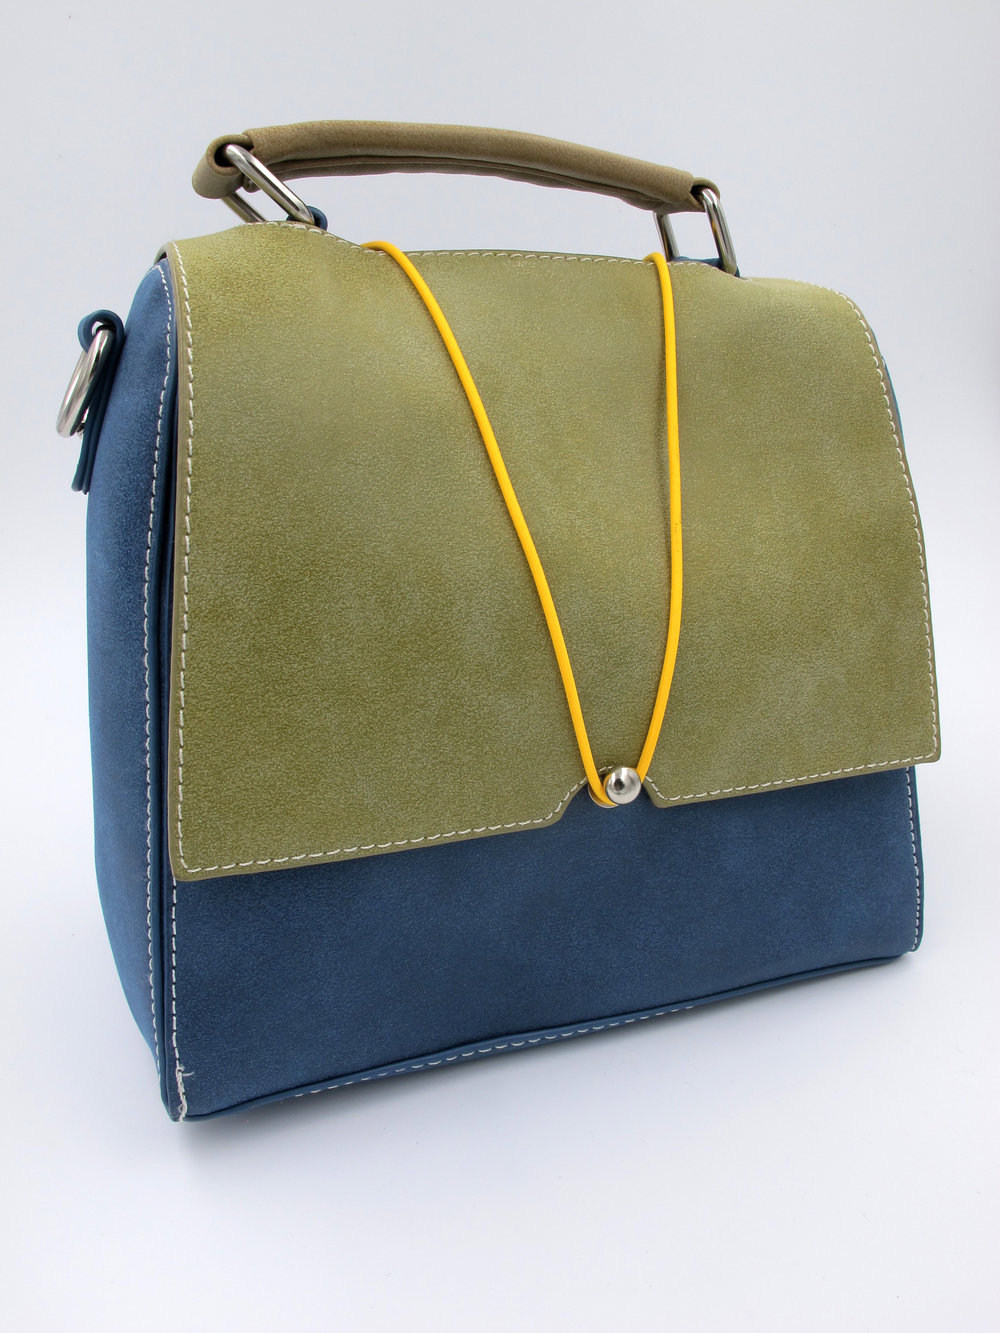 Vegan bags from Dutch designers, Hi Di Hi